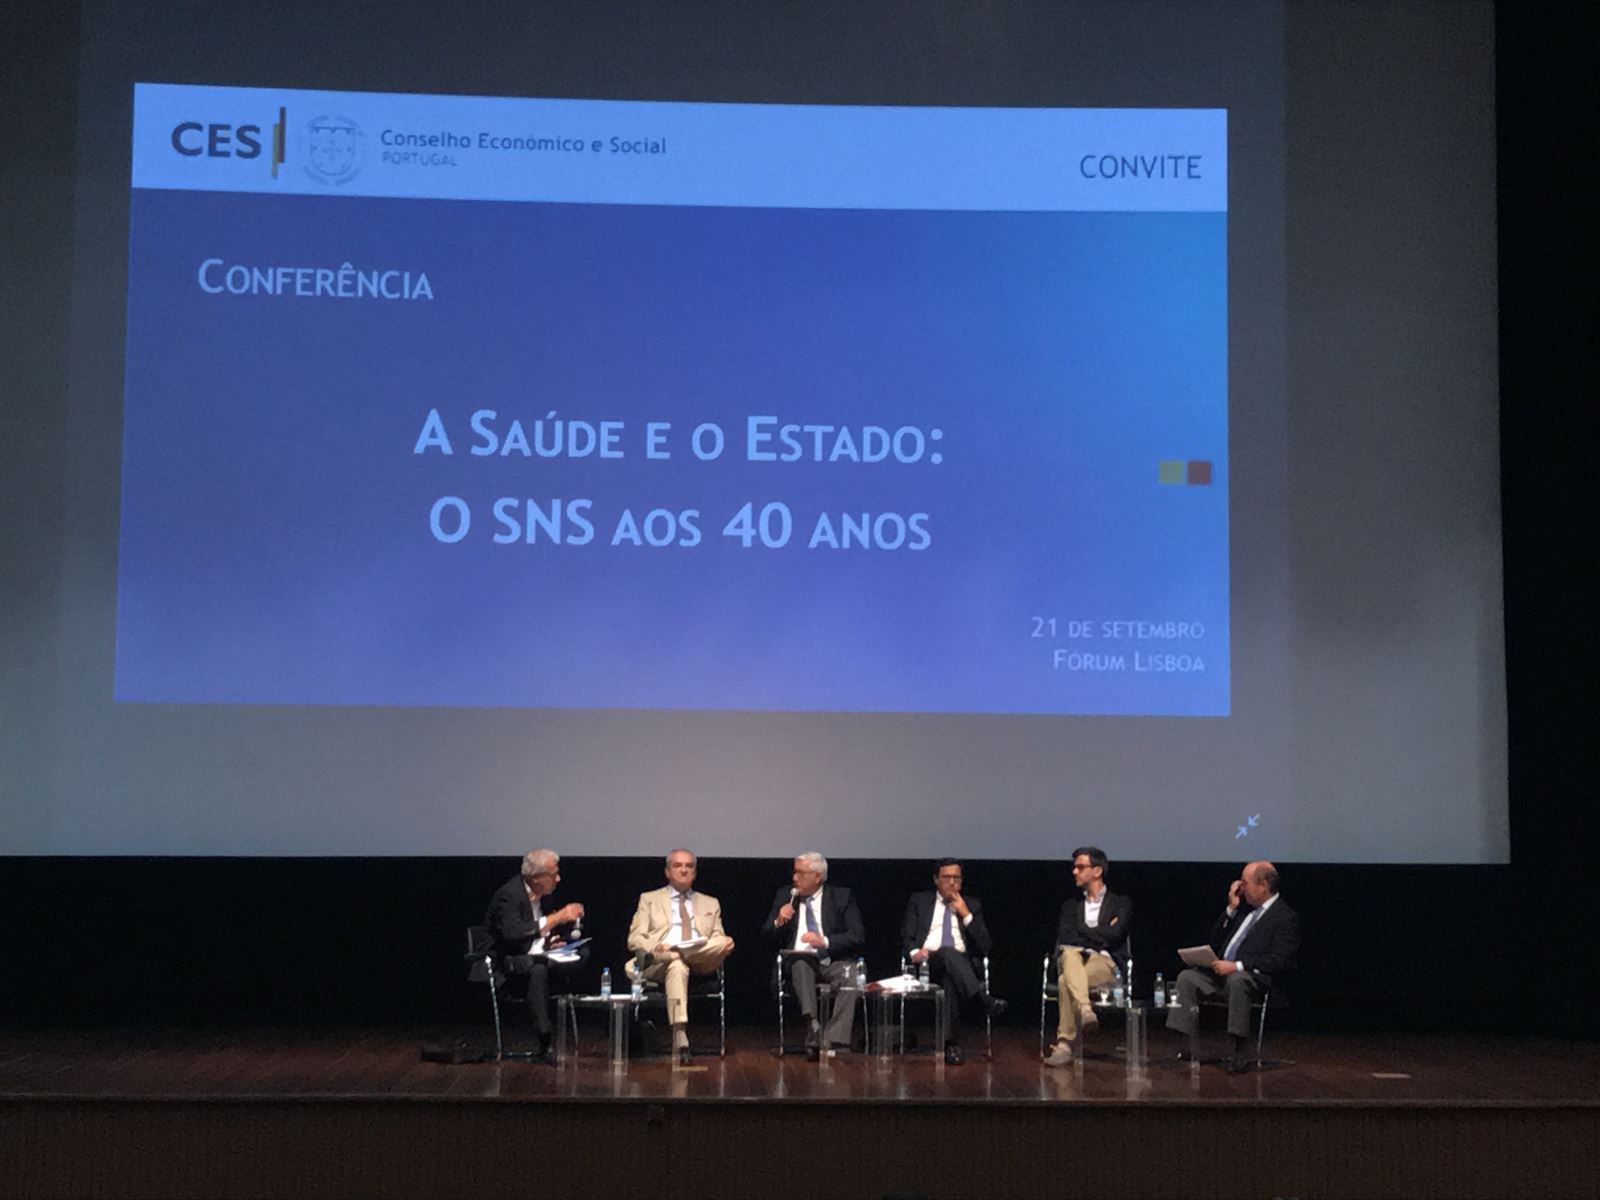 CES | Especialistas debatem papel do SNS em Portugal